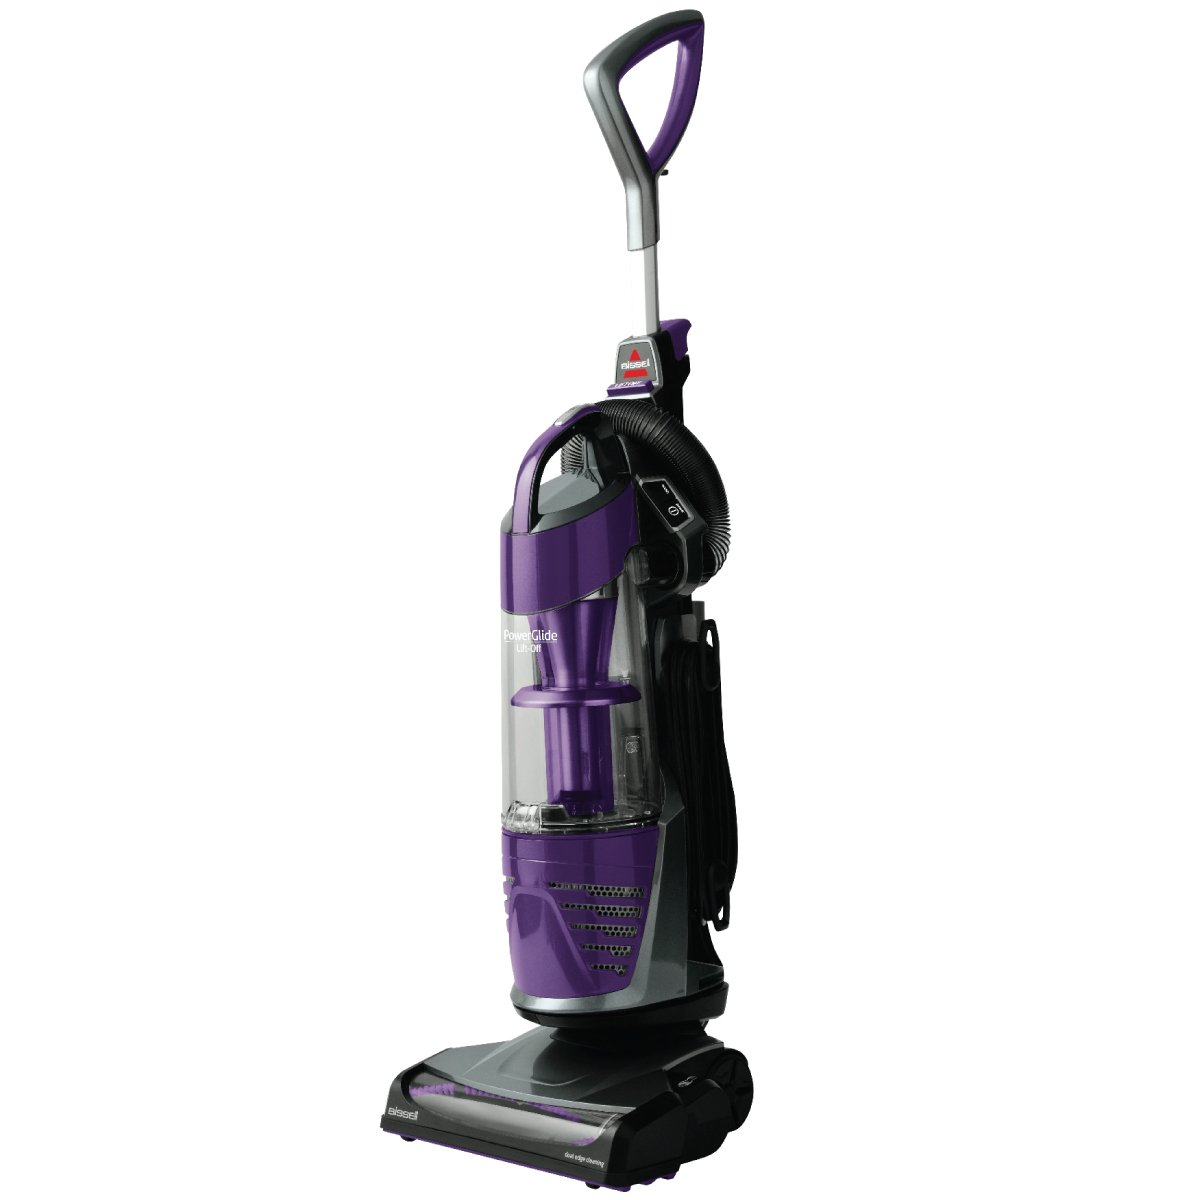 Vacuum cleaner clipart vacuum cleaner clip art - Bissell Upright Vacuum Cleaner Clip Art